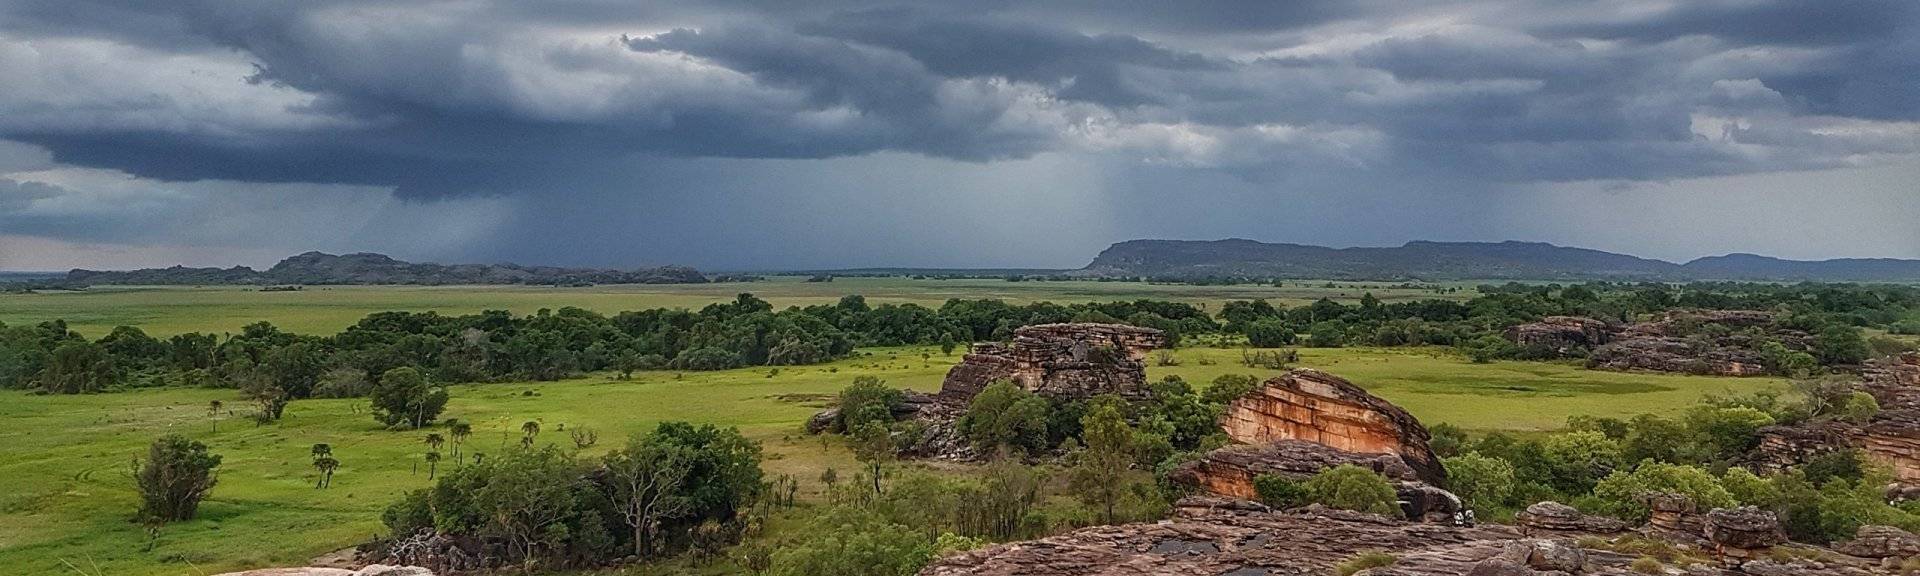 What are the seasons of Kakadu?